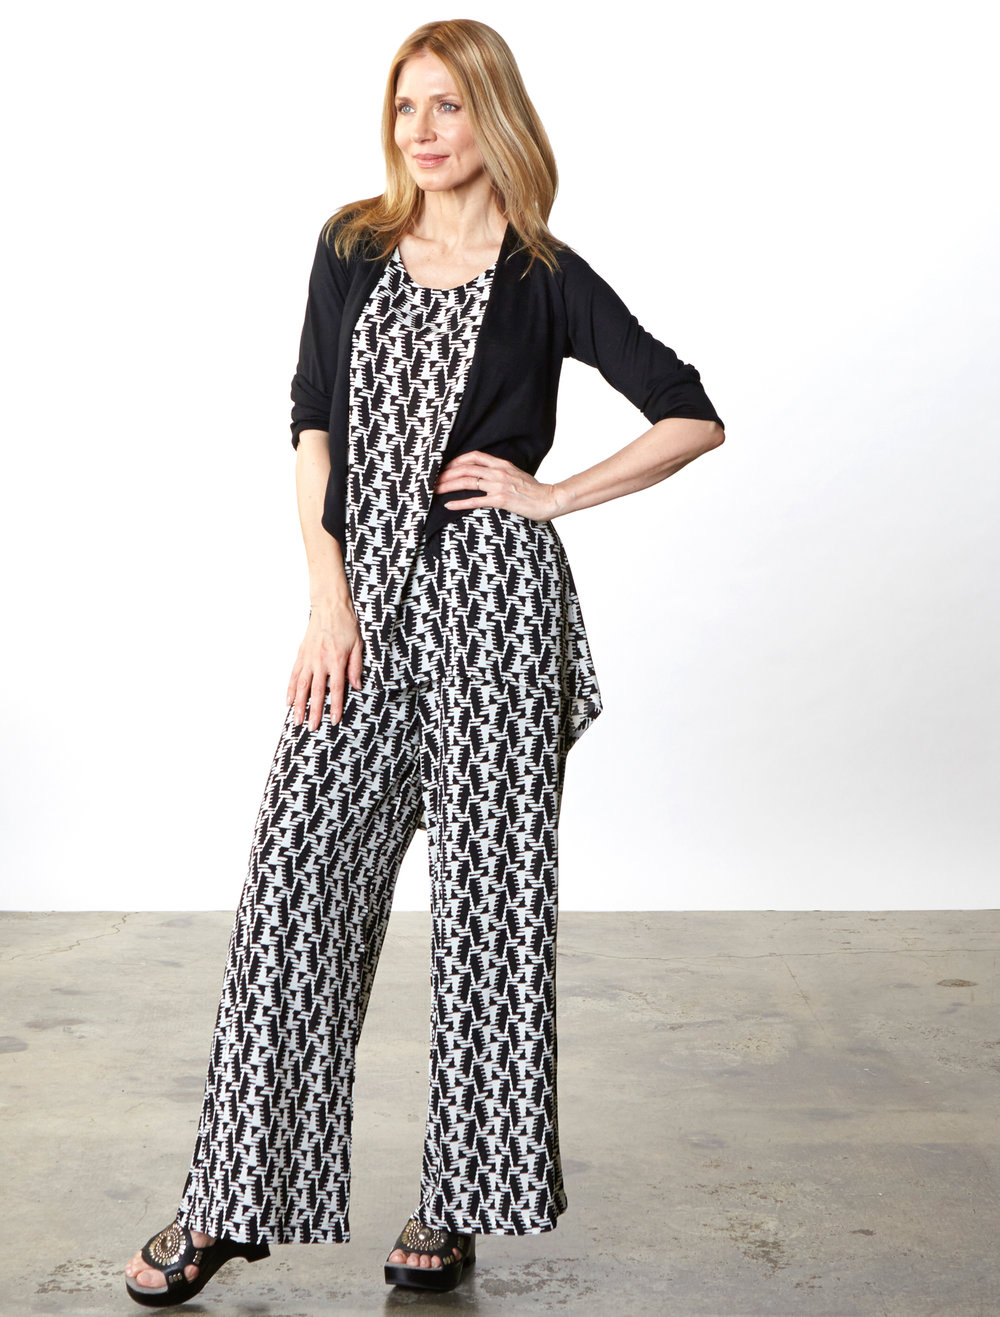 Tre Cardigan in Black Italian Cotton/Cashmere, Luis Tunic, Long Full Pant in Black/Cream Italian Polyester